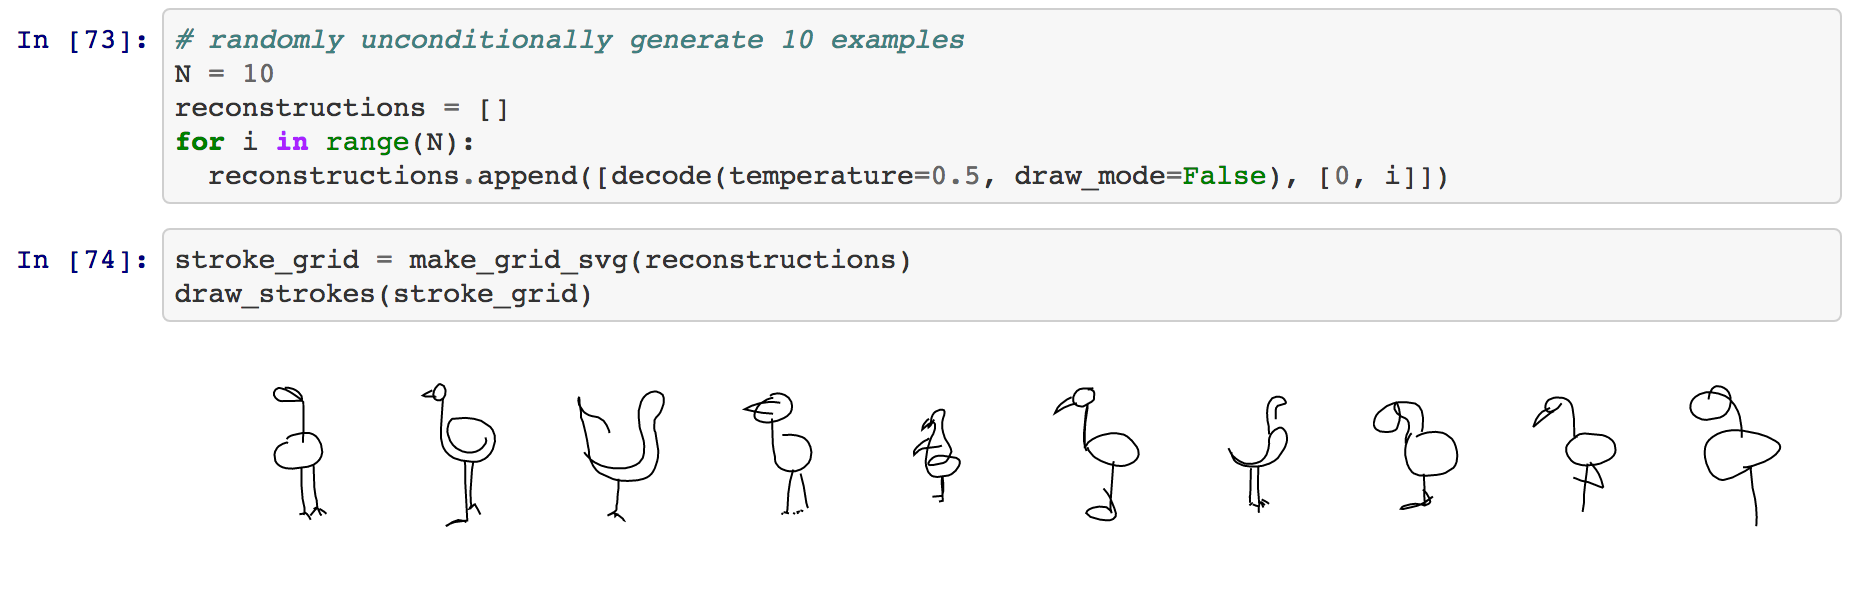 Some generated flamingos from the Jupyter notebook